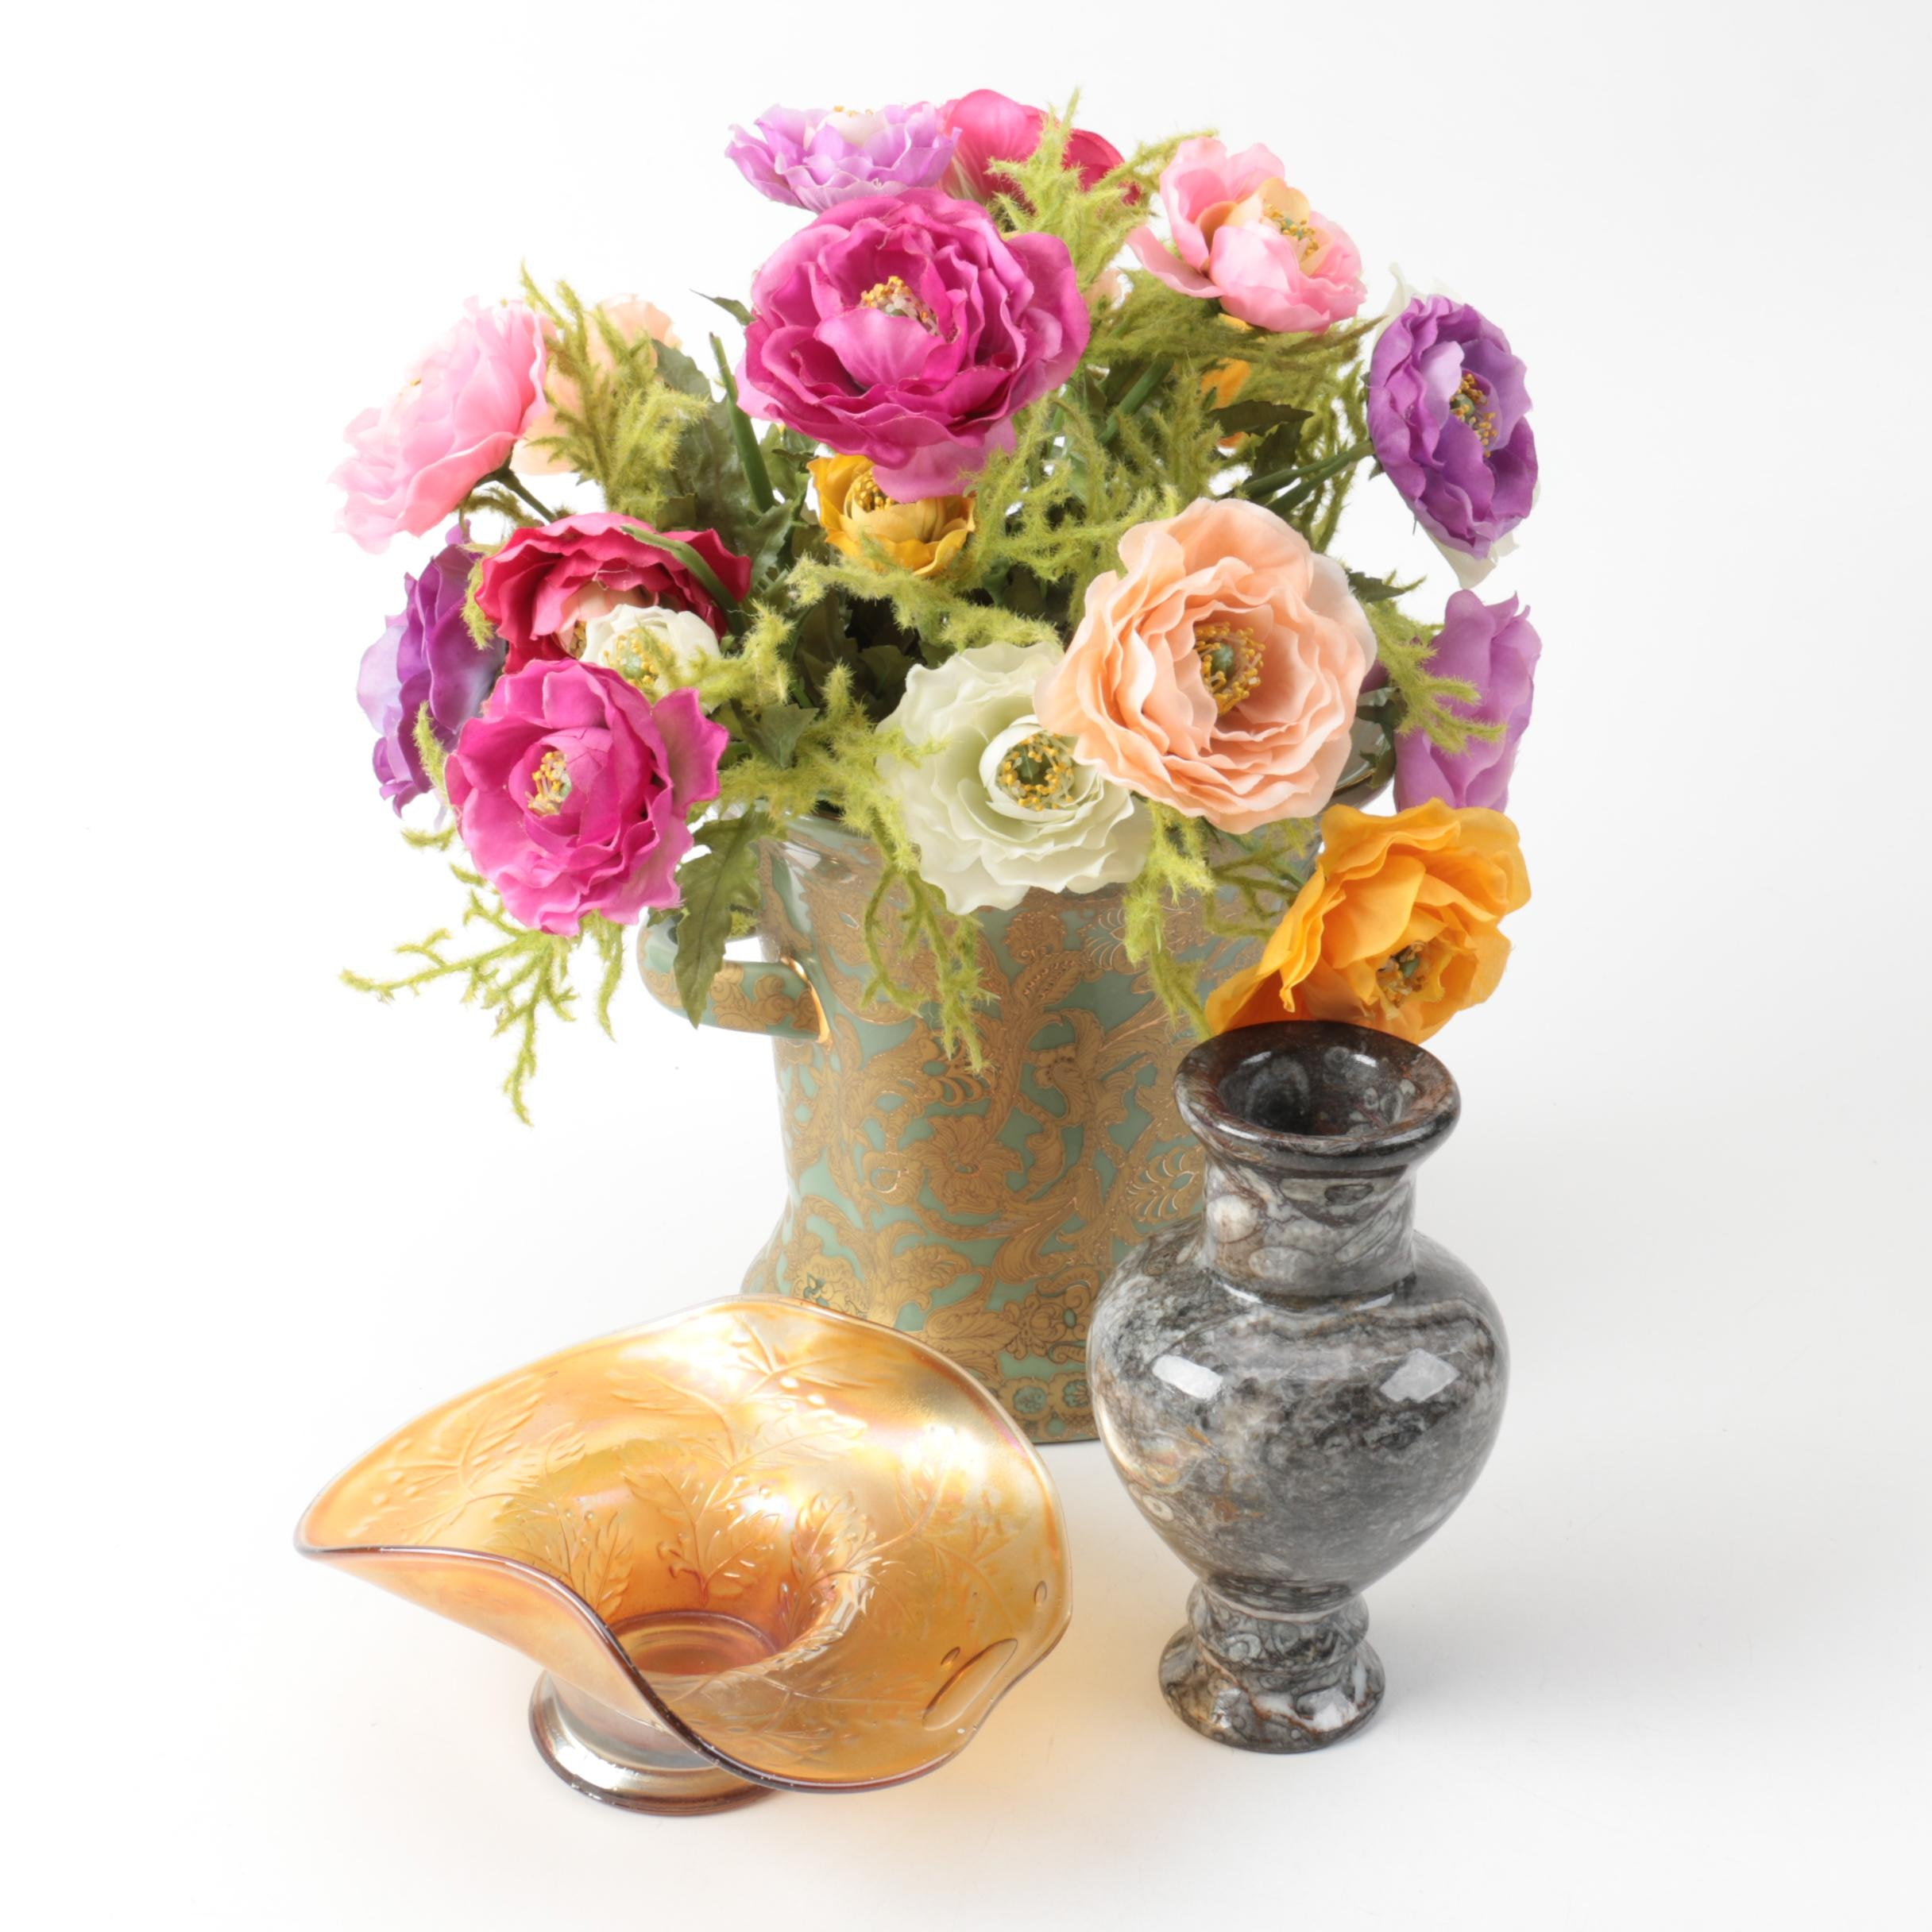 Ceramic and Limestone Vases and Glass Bowl